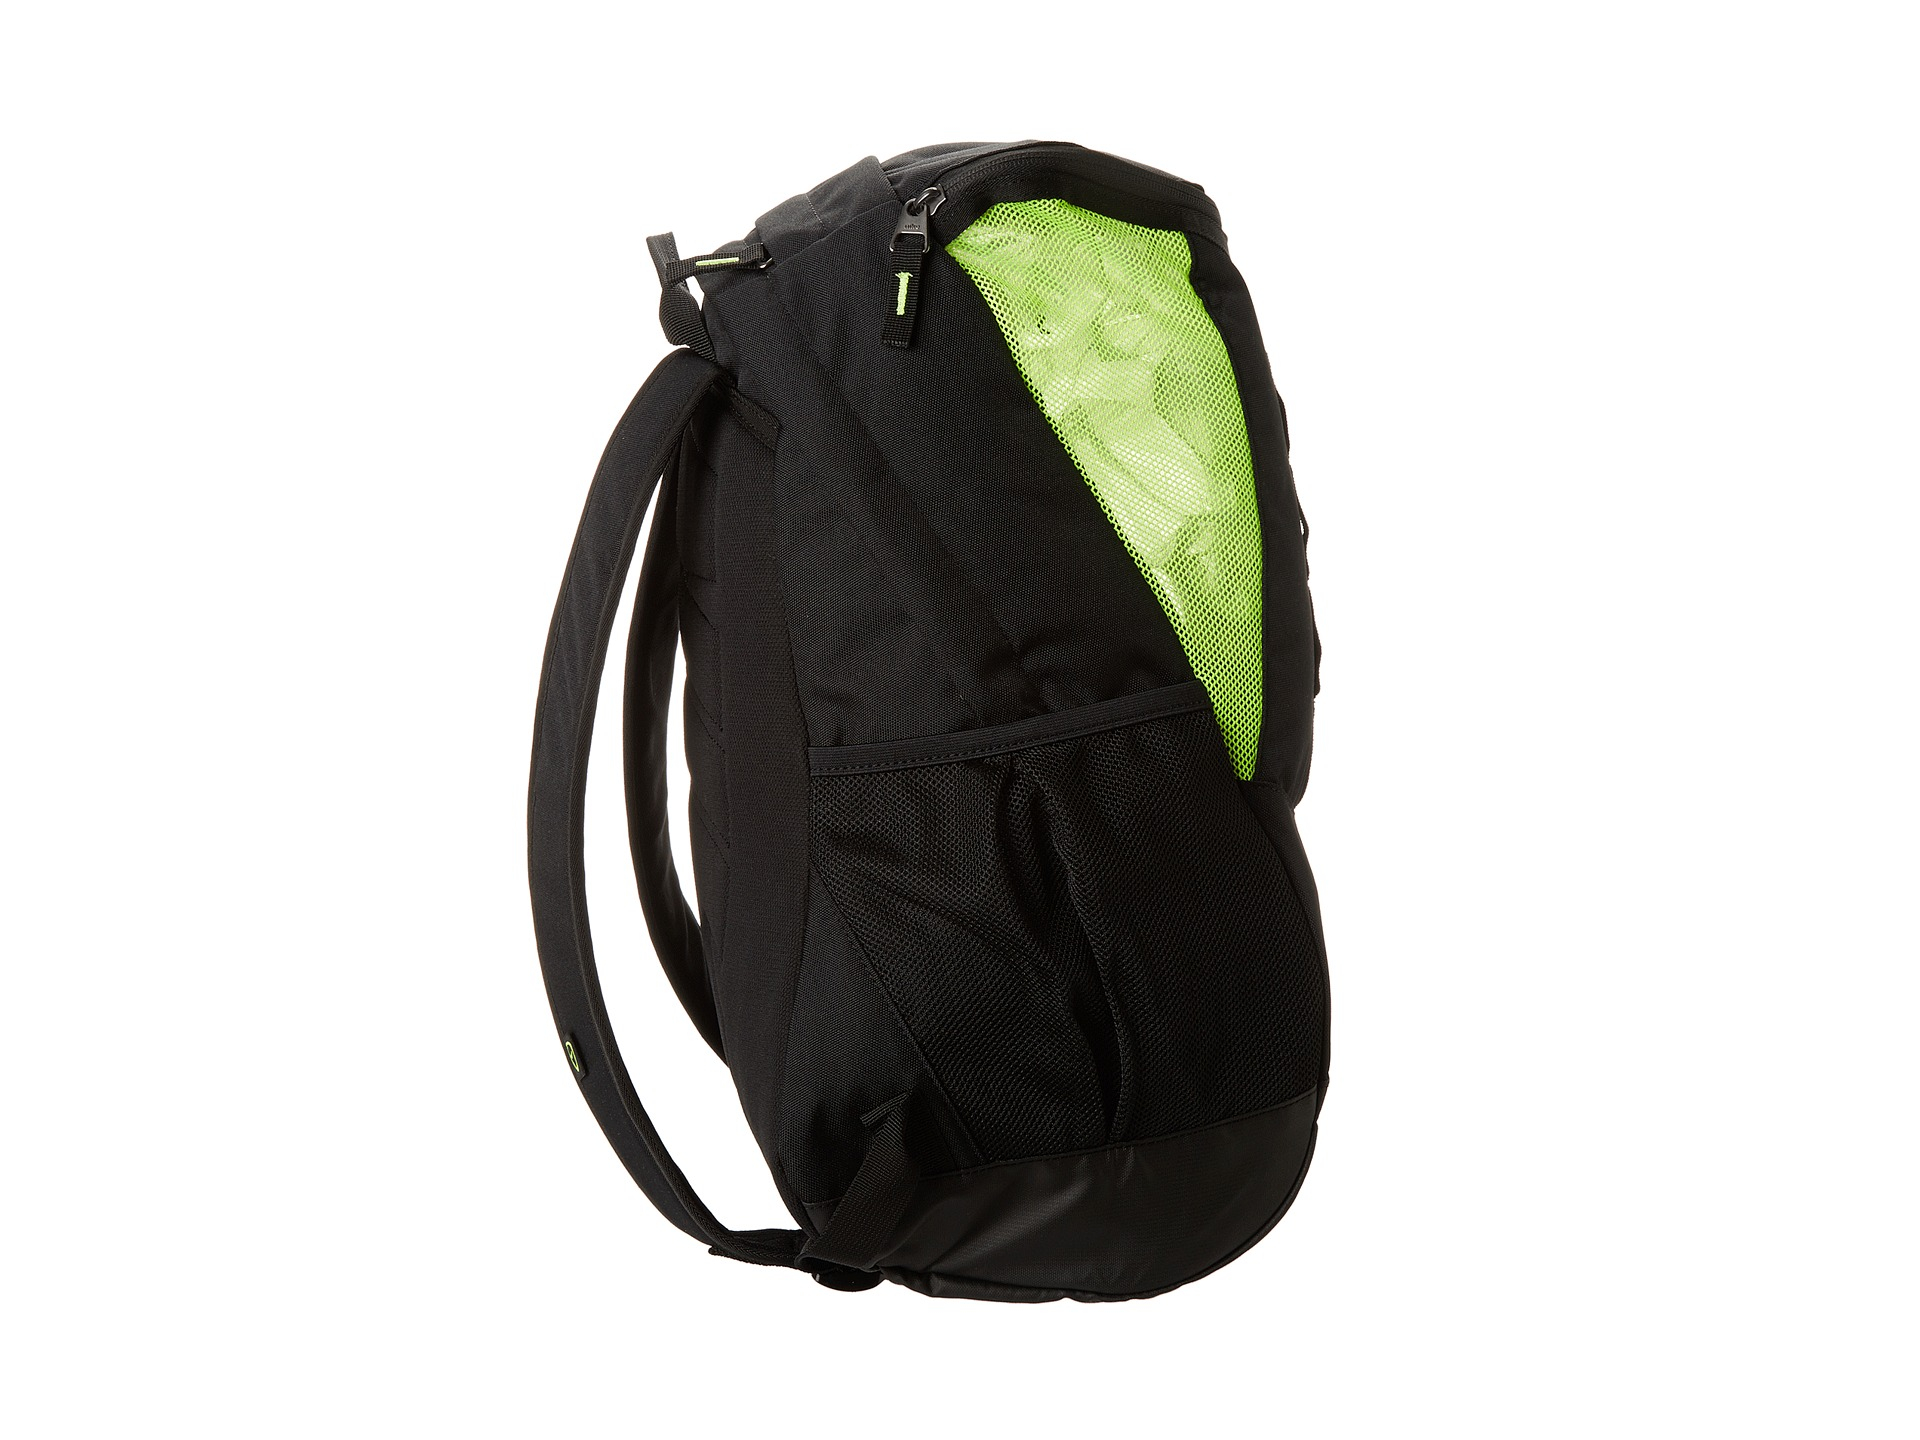 Lyst - Nike Soccer Shield Compact Backpack in Black for Men